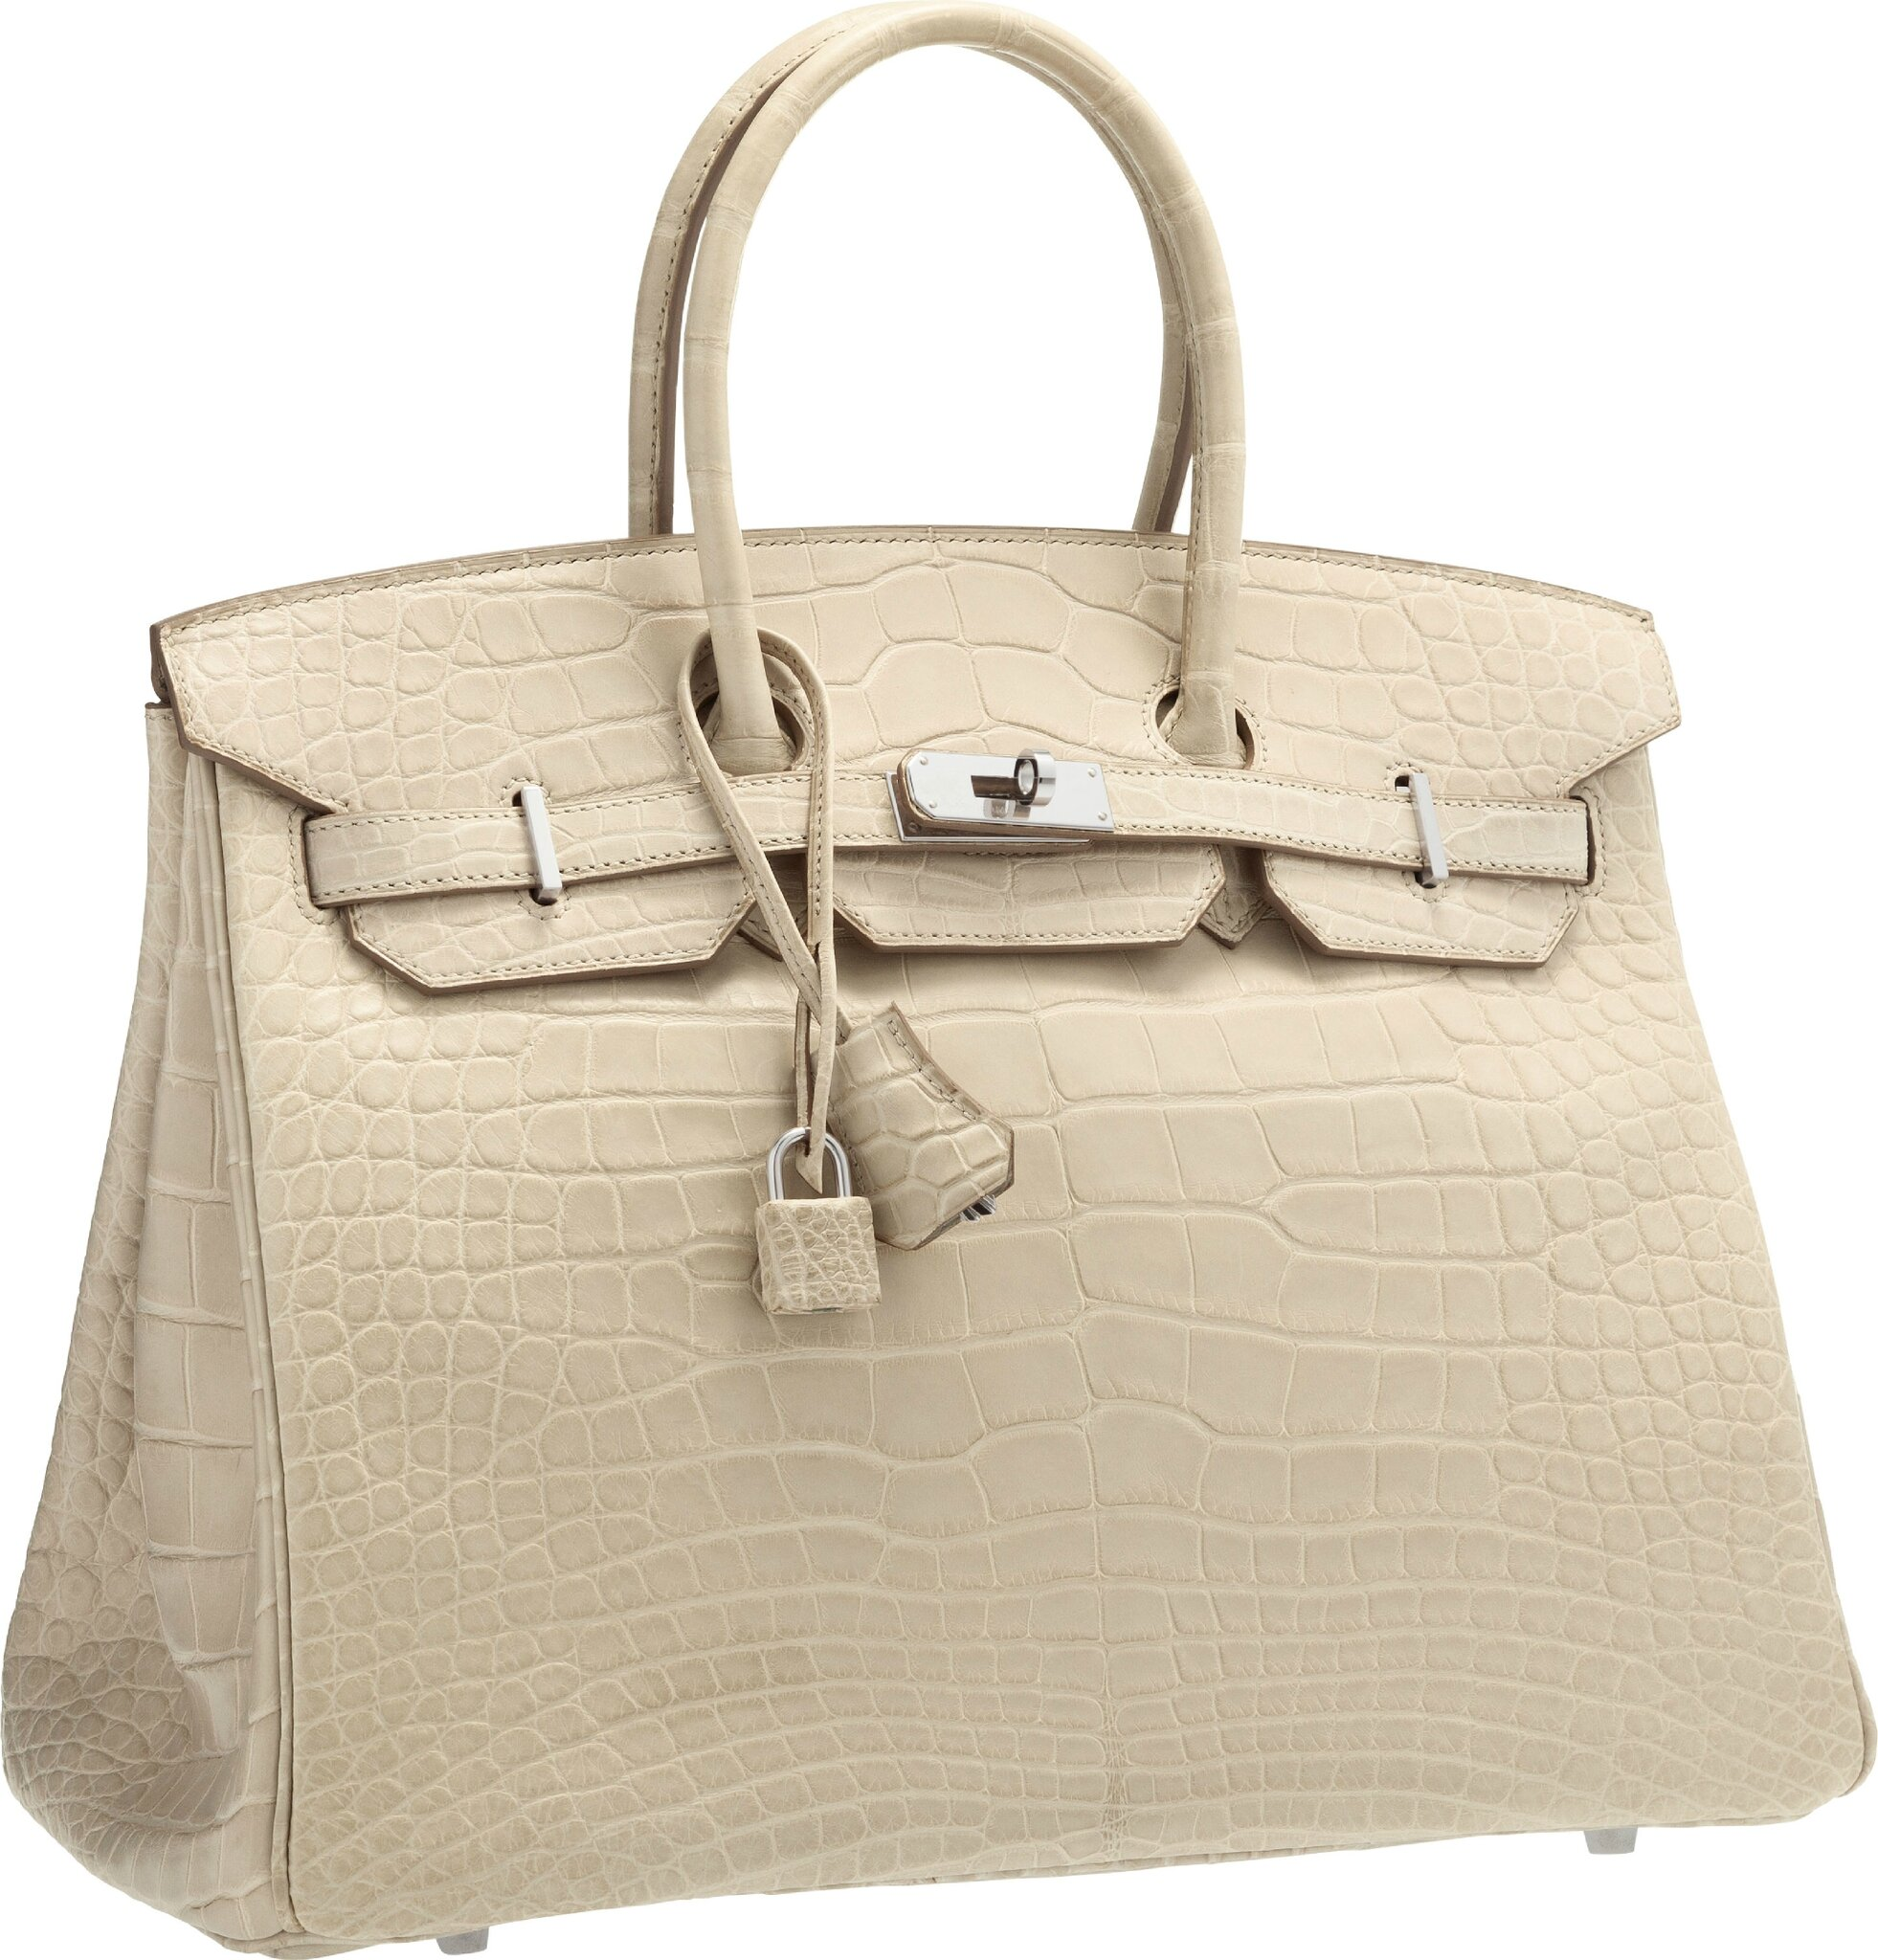 hermes ostrich bag price - Herm��s rarities = Holiday Luxury at Heritage Auctions' accessories ...